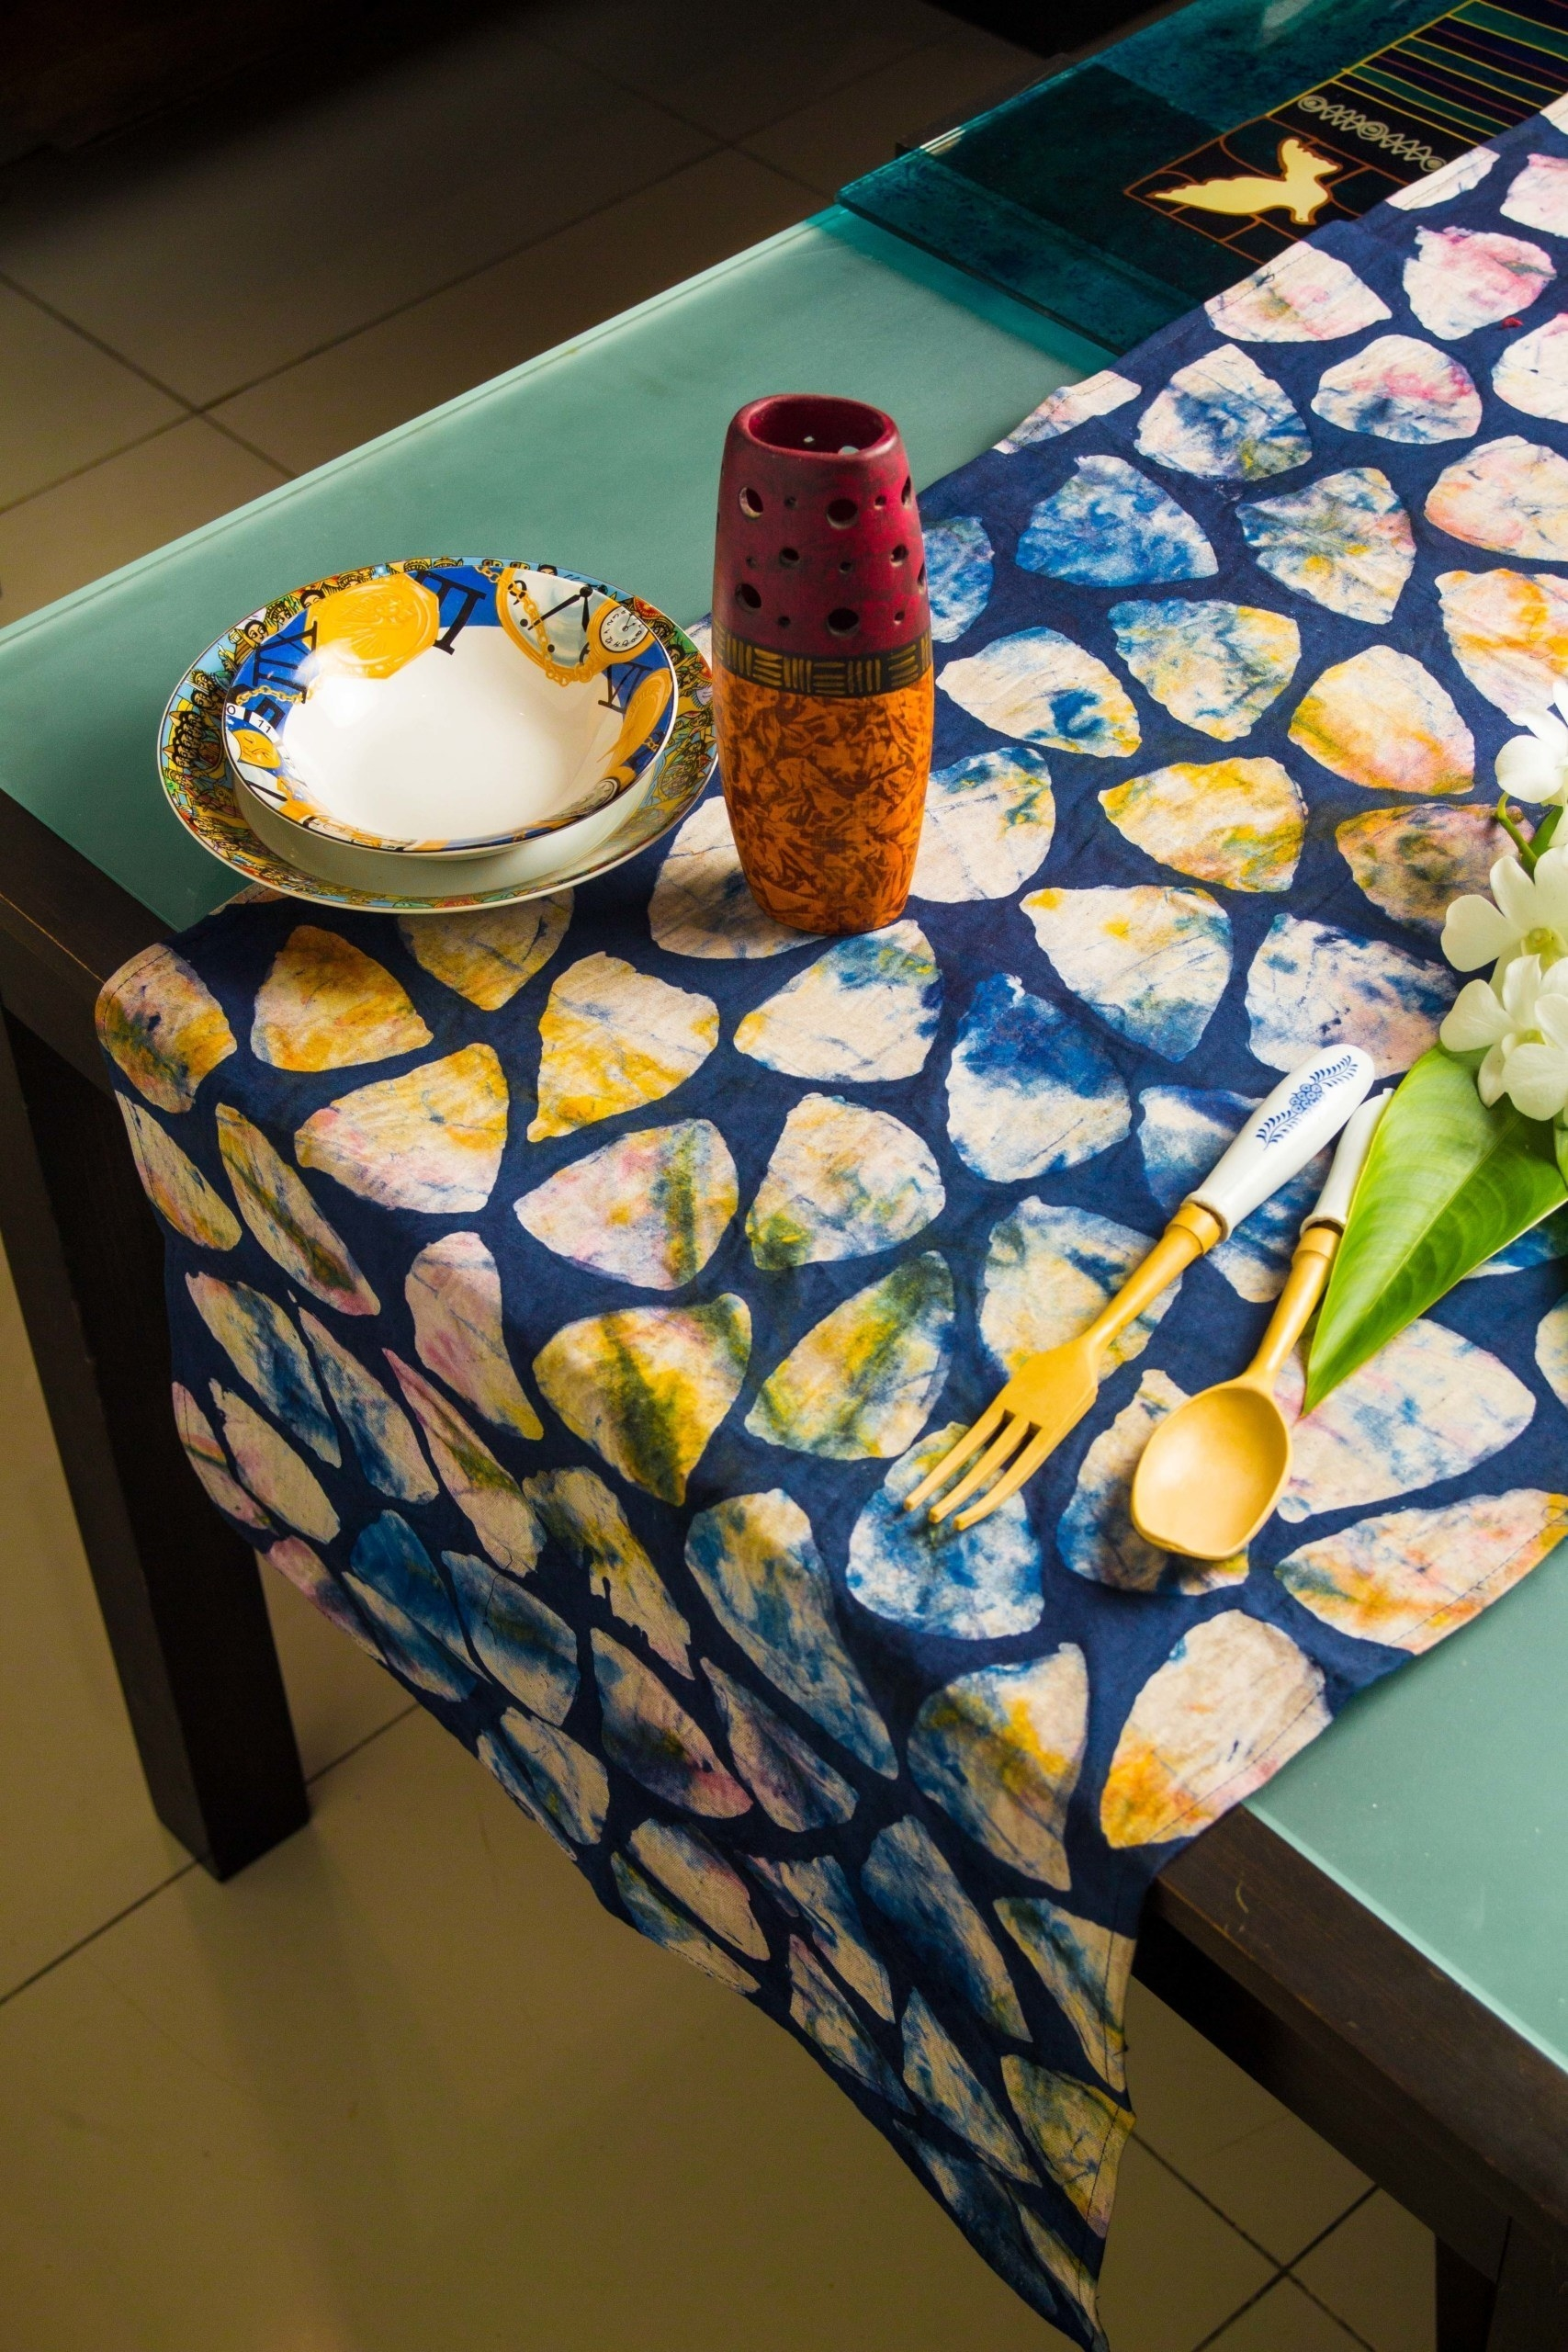 table with blue, colorful table runner on it